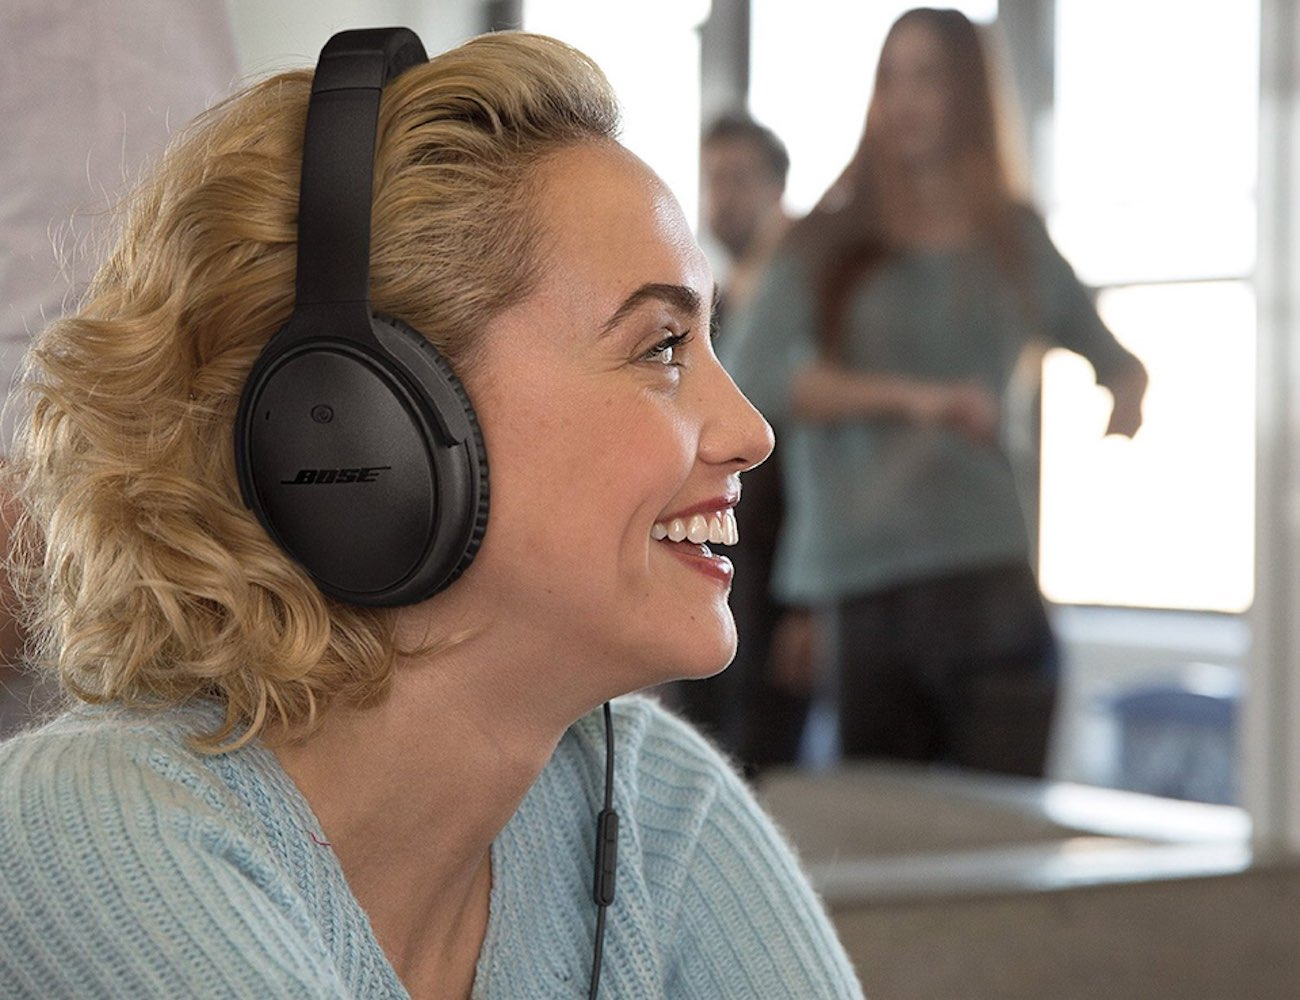 d271f35de4c QuietComfort 25 Noise Cancelling Headphones From Bose » Gadget Flow